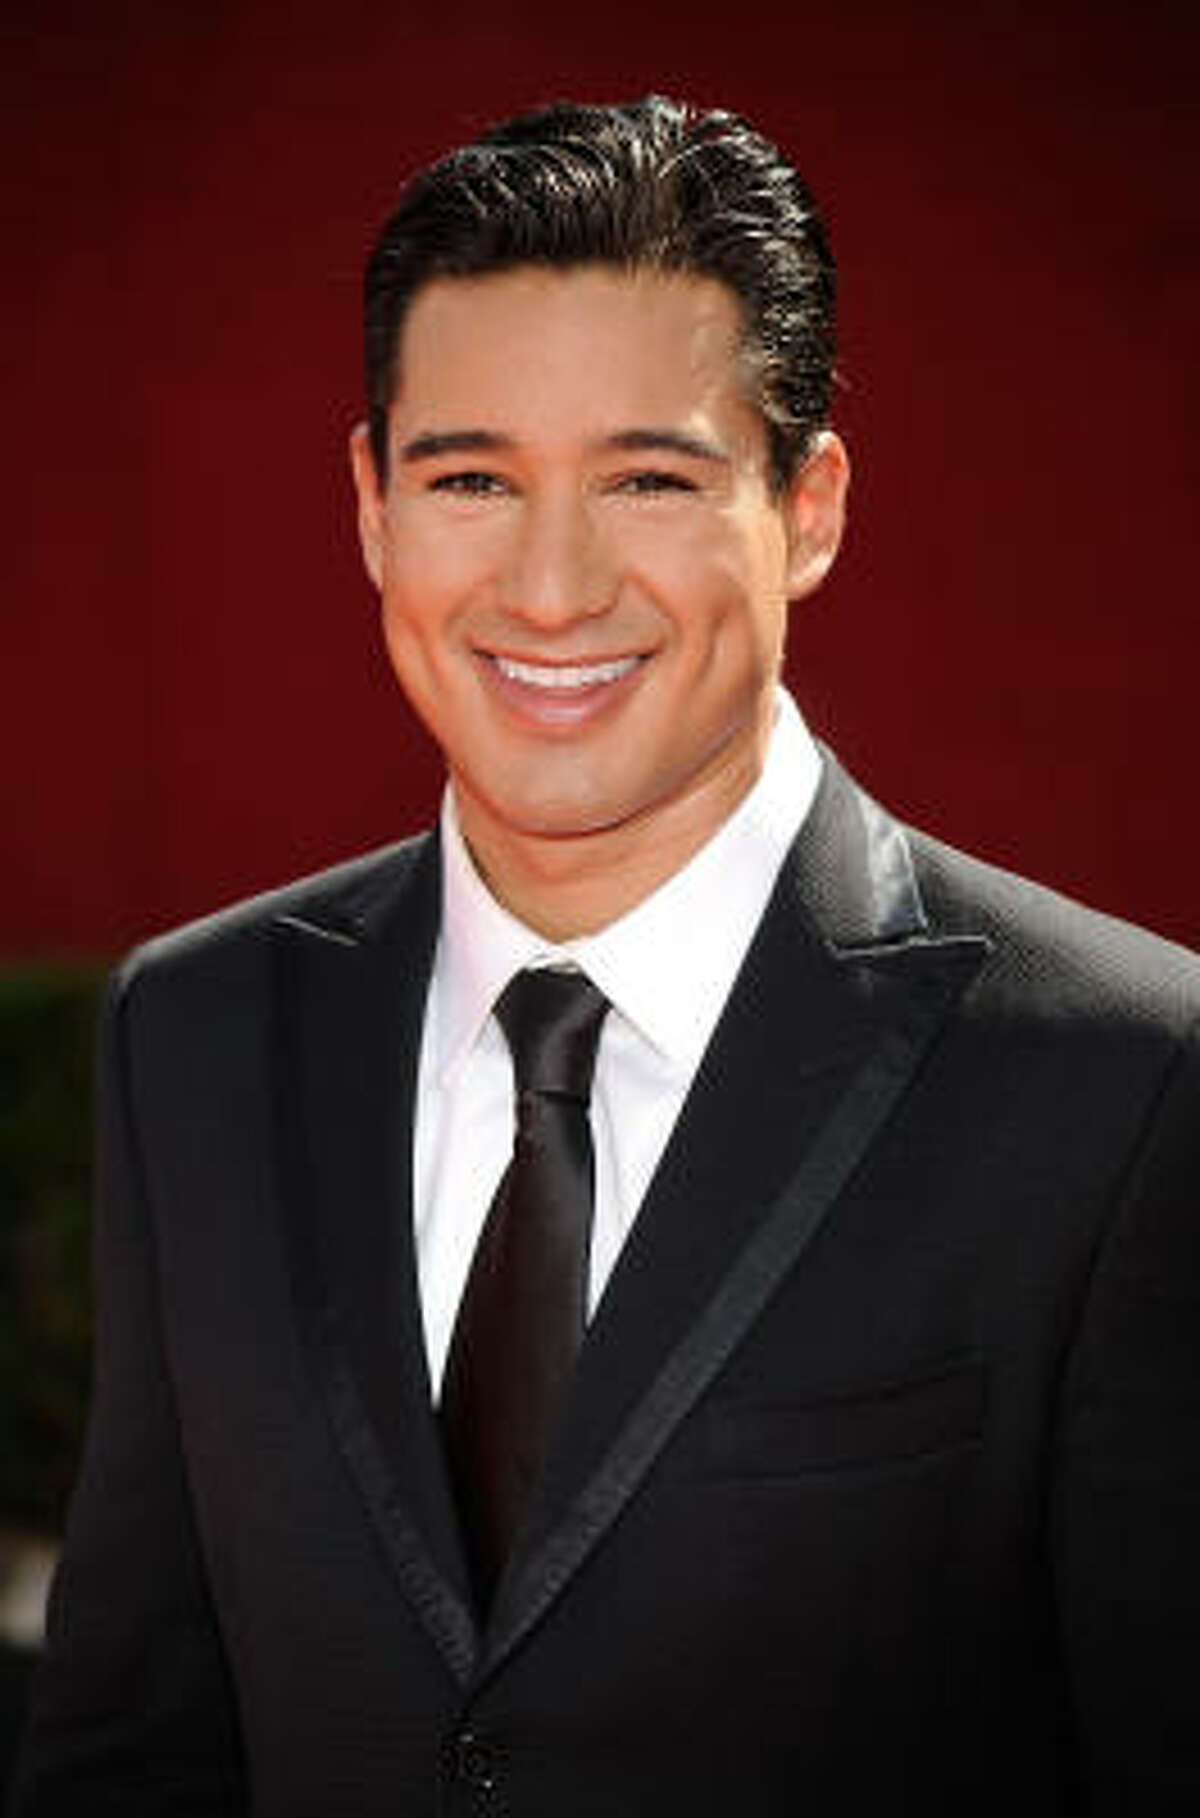 MARIO LOPEZ, actor: Pittsburgh, 21-17. My bro Roethlisberger is a gamer, and he finds ways to win, and even though they lost their starting Pro Bowl center, (Maurkice) Pouncey, I'm gonna go with the Steelers.